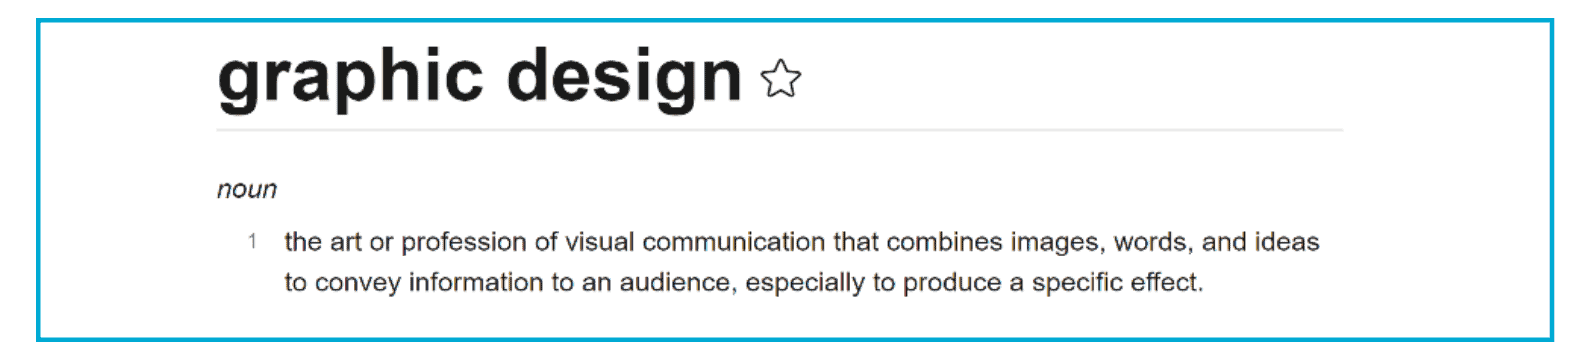 What is Graphic Design - Dictionary Definition